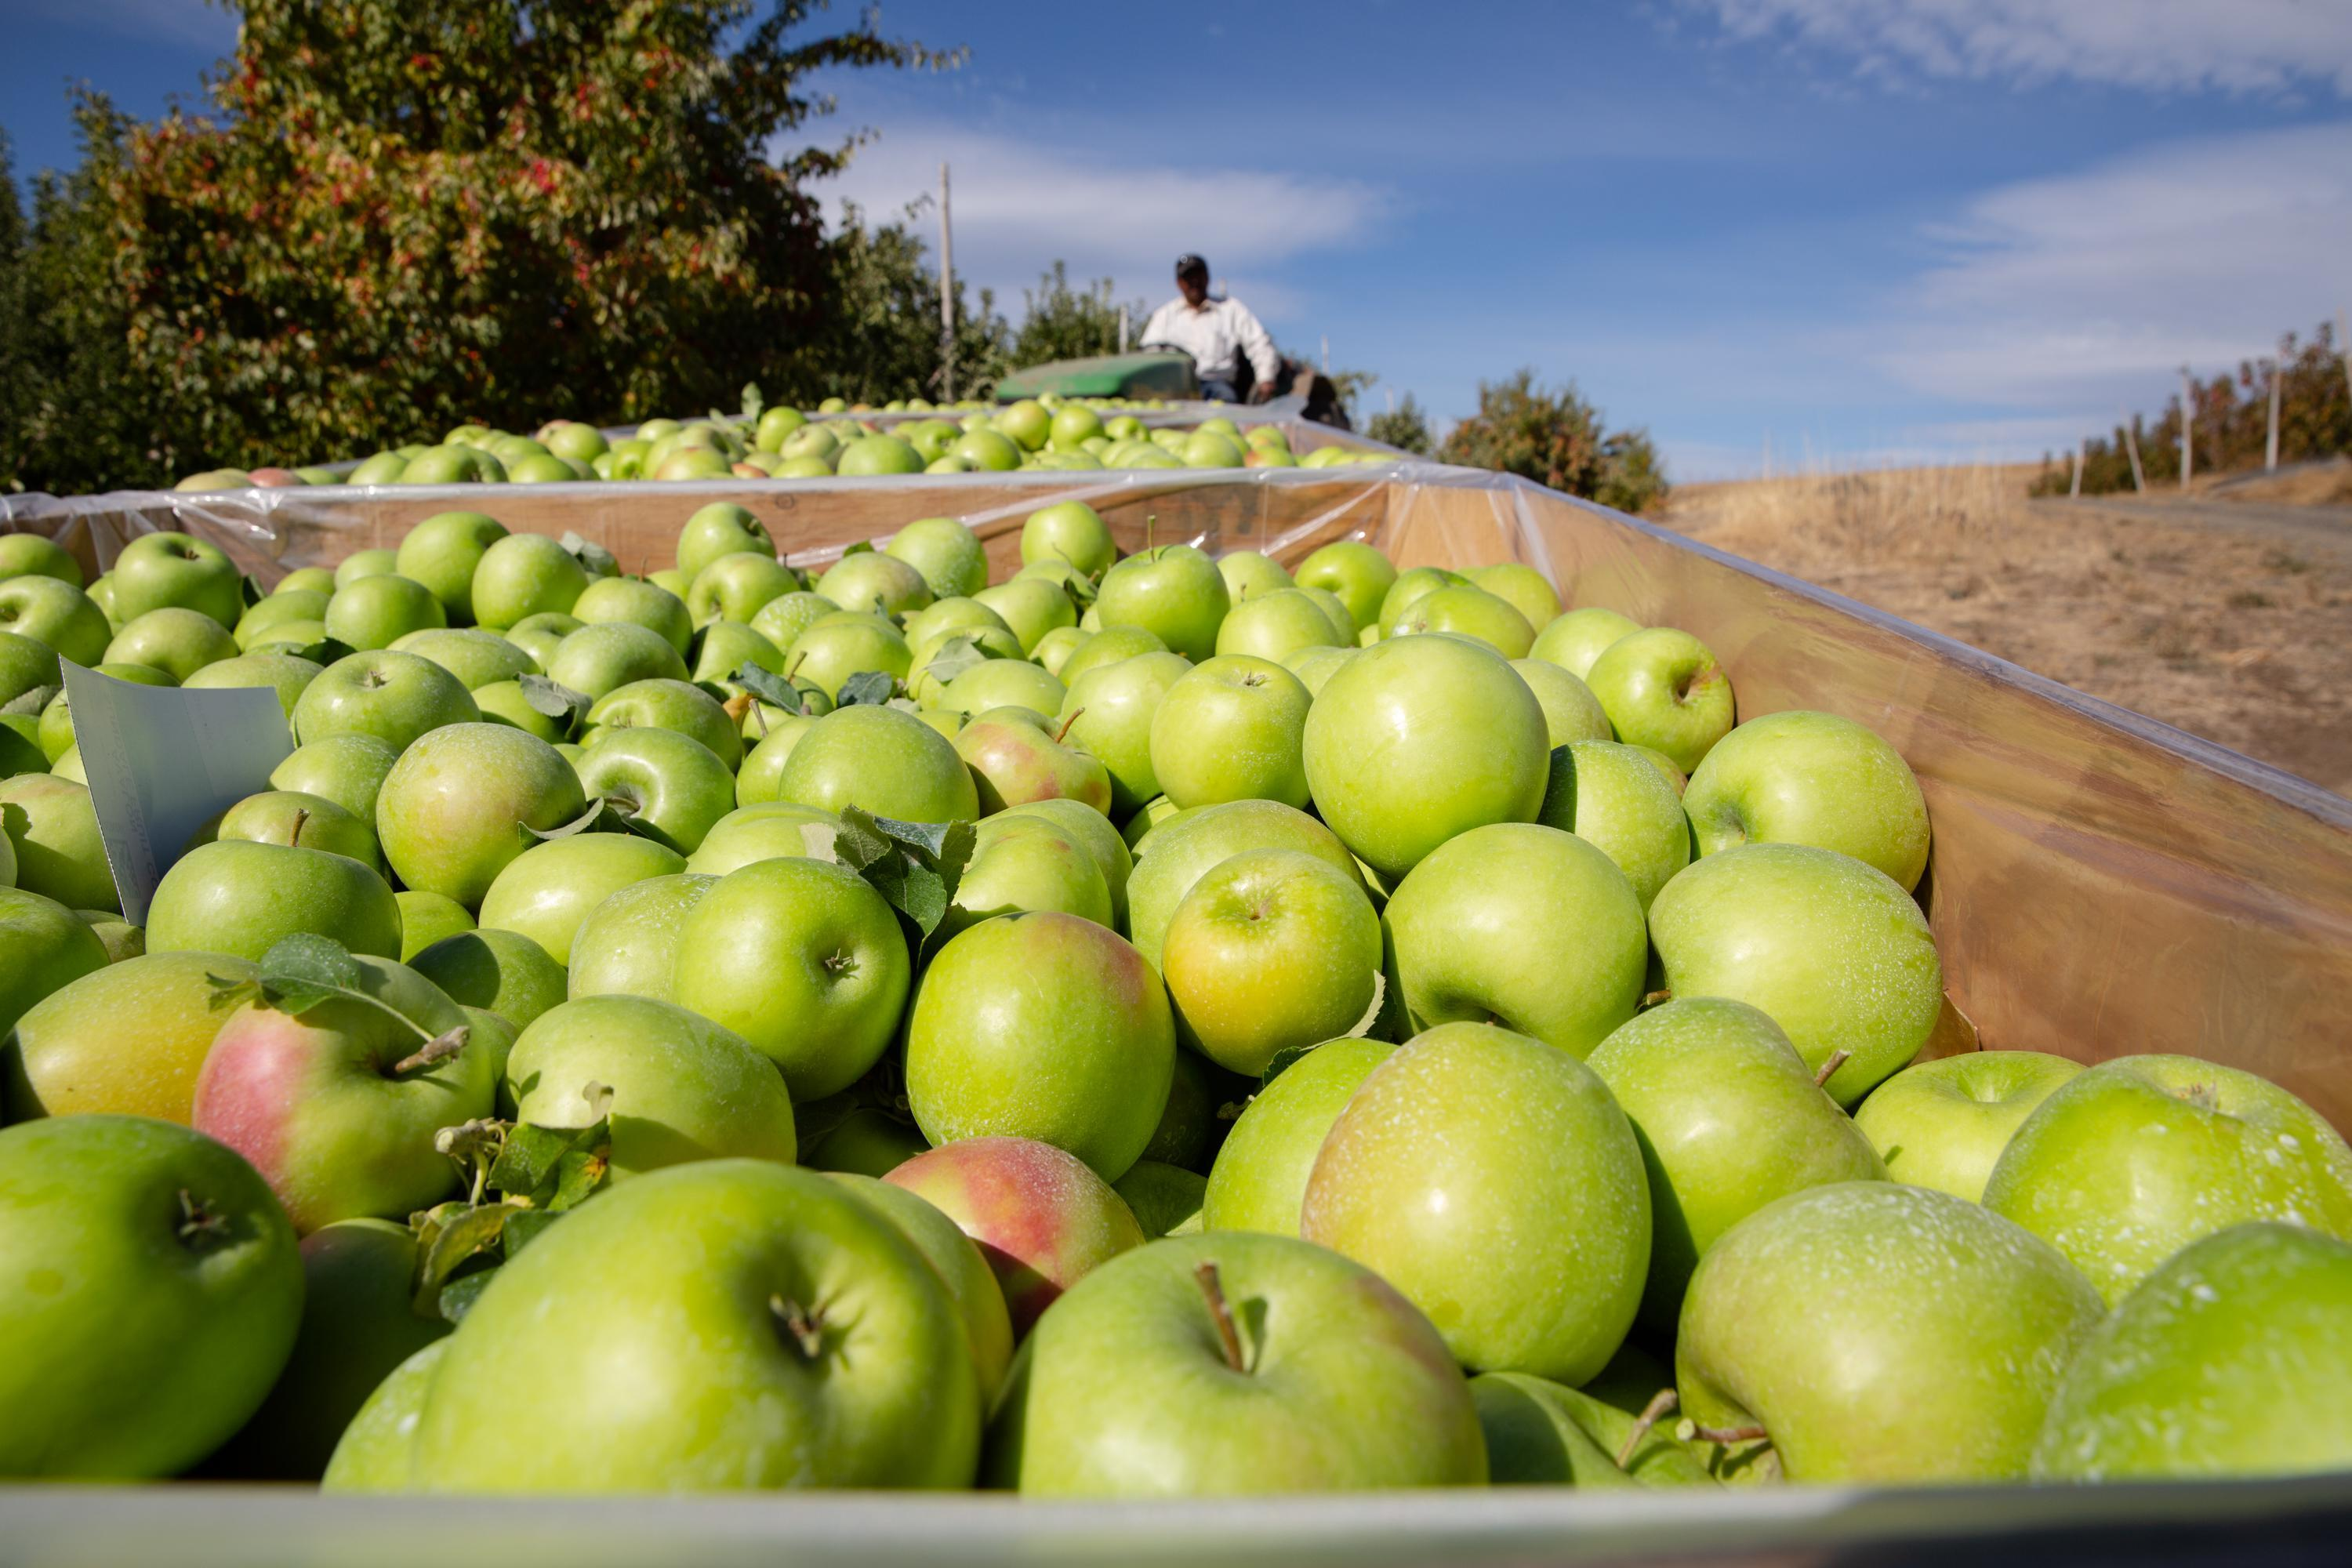 Vilmer Alcantar hauls bins of Granny Smith apples at Avalon Orchards in Sundale, Wash., Monday, Oct. 7, 2019. Alcantar is the foreman here and has worked for Avalon since 1983.